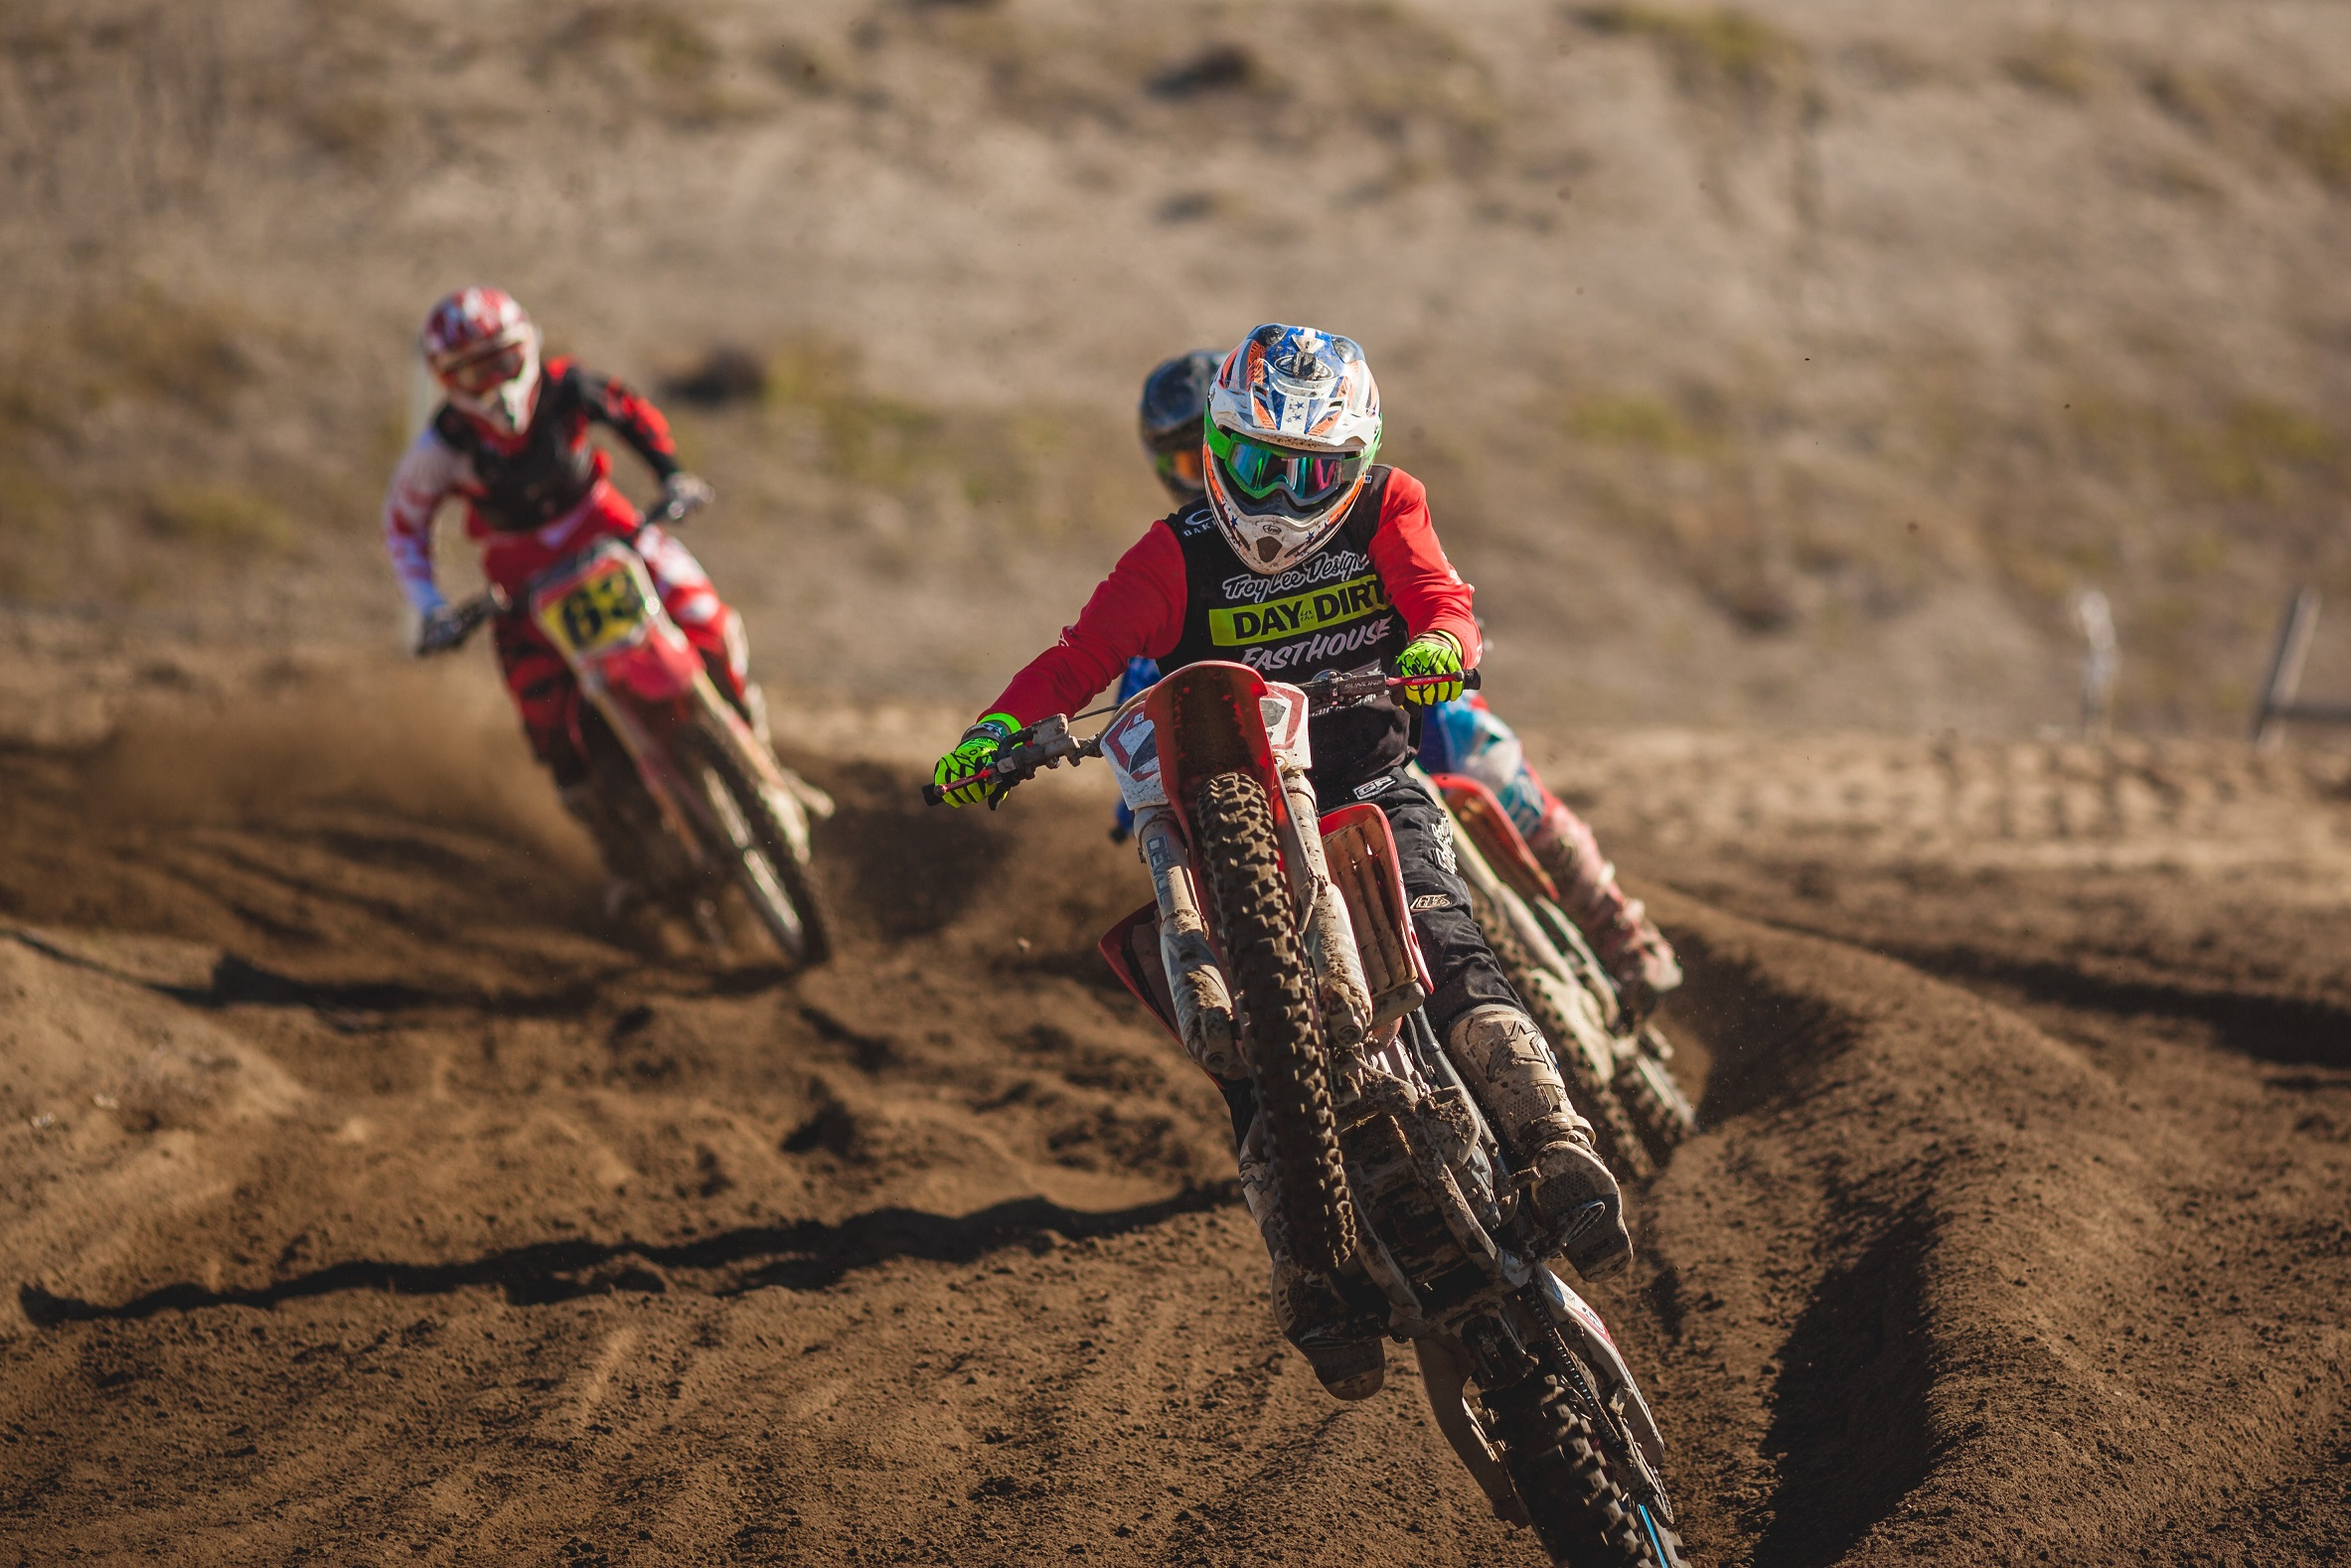 Dirt bike riders racing in fierce competition on a track.